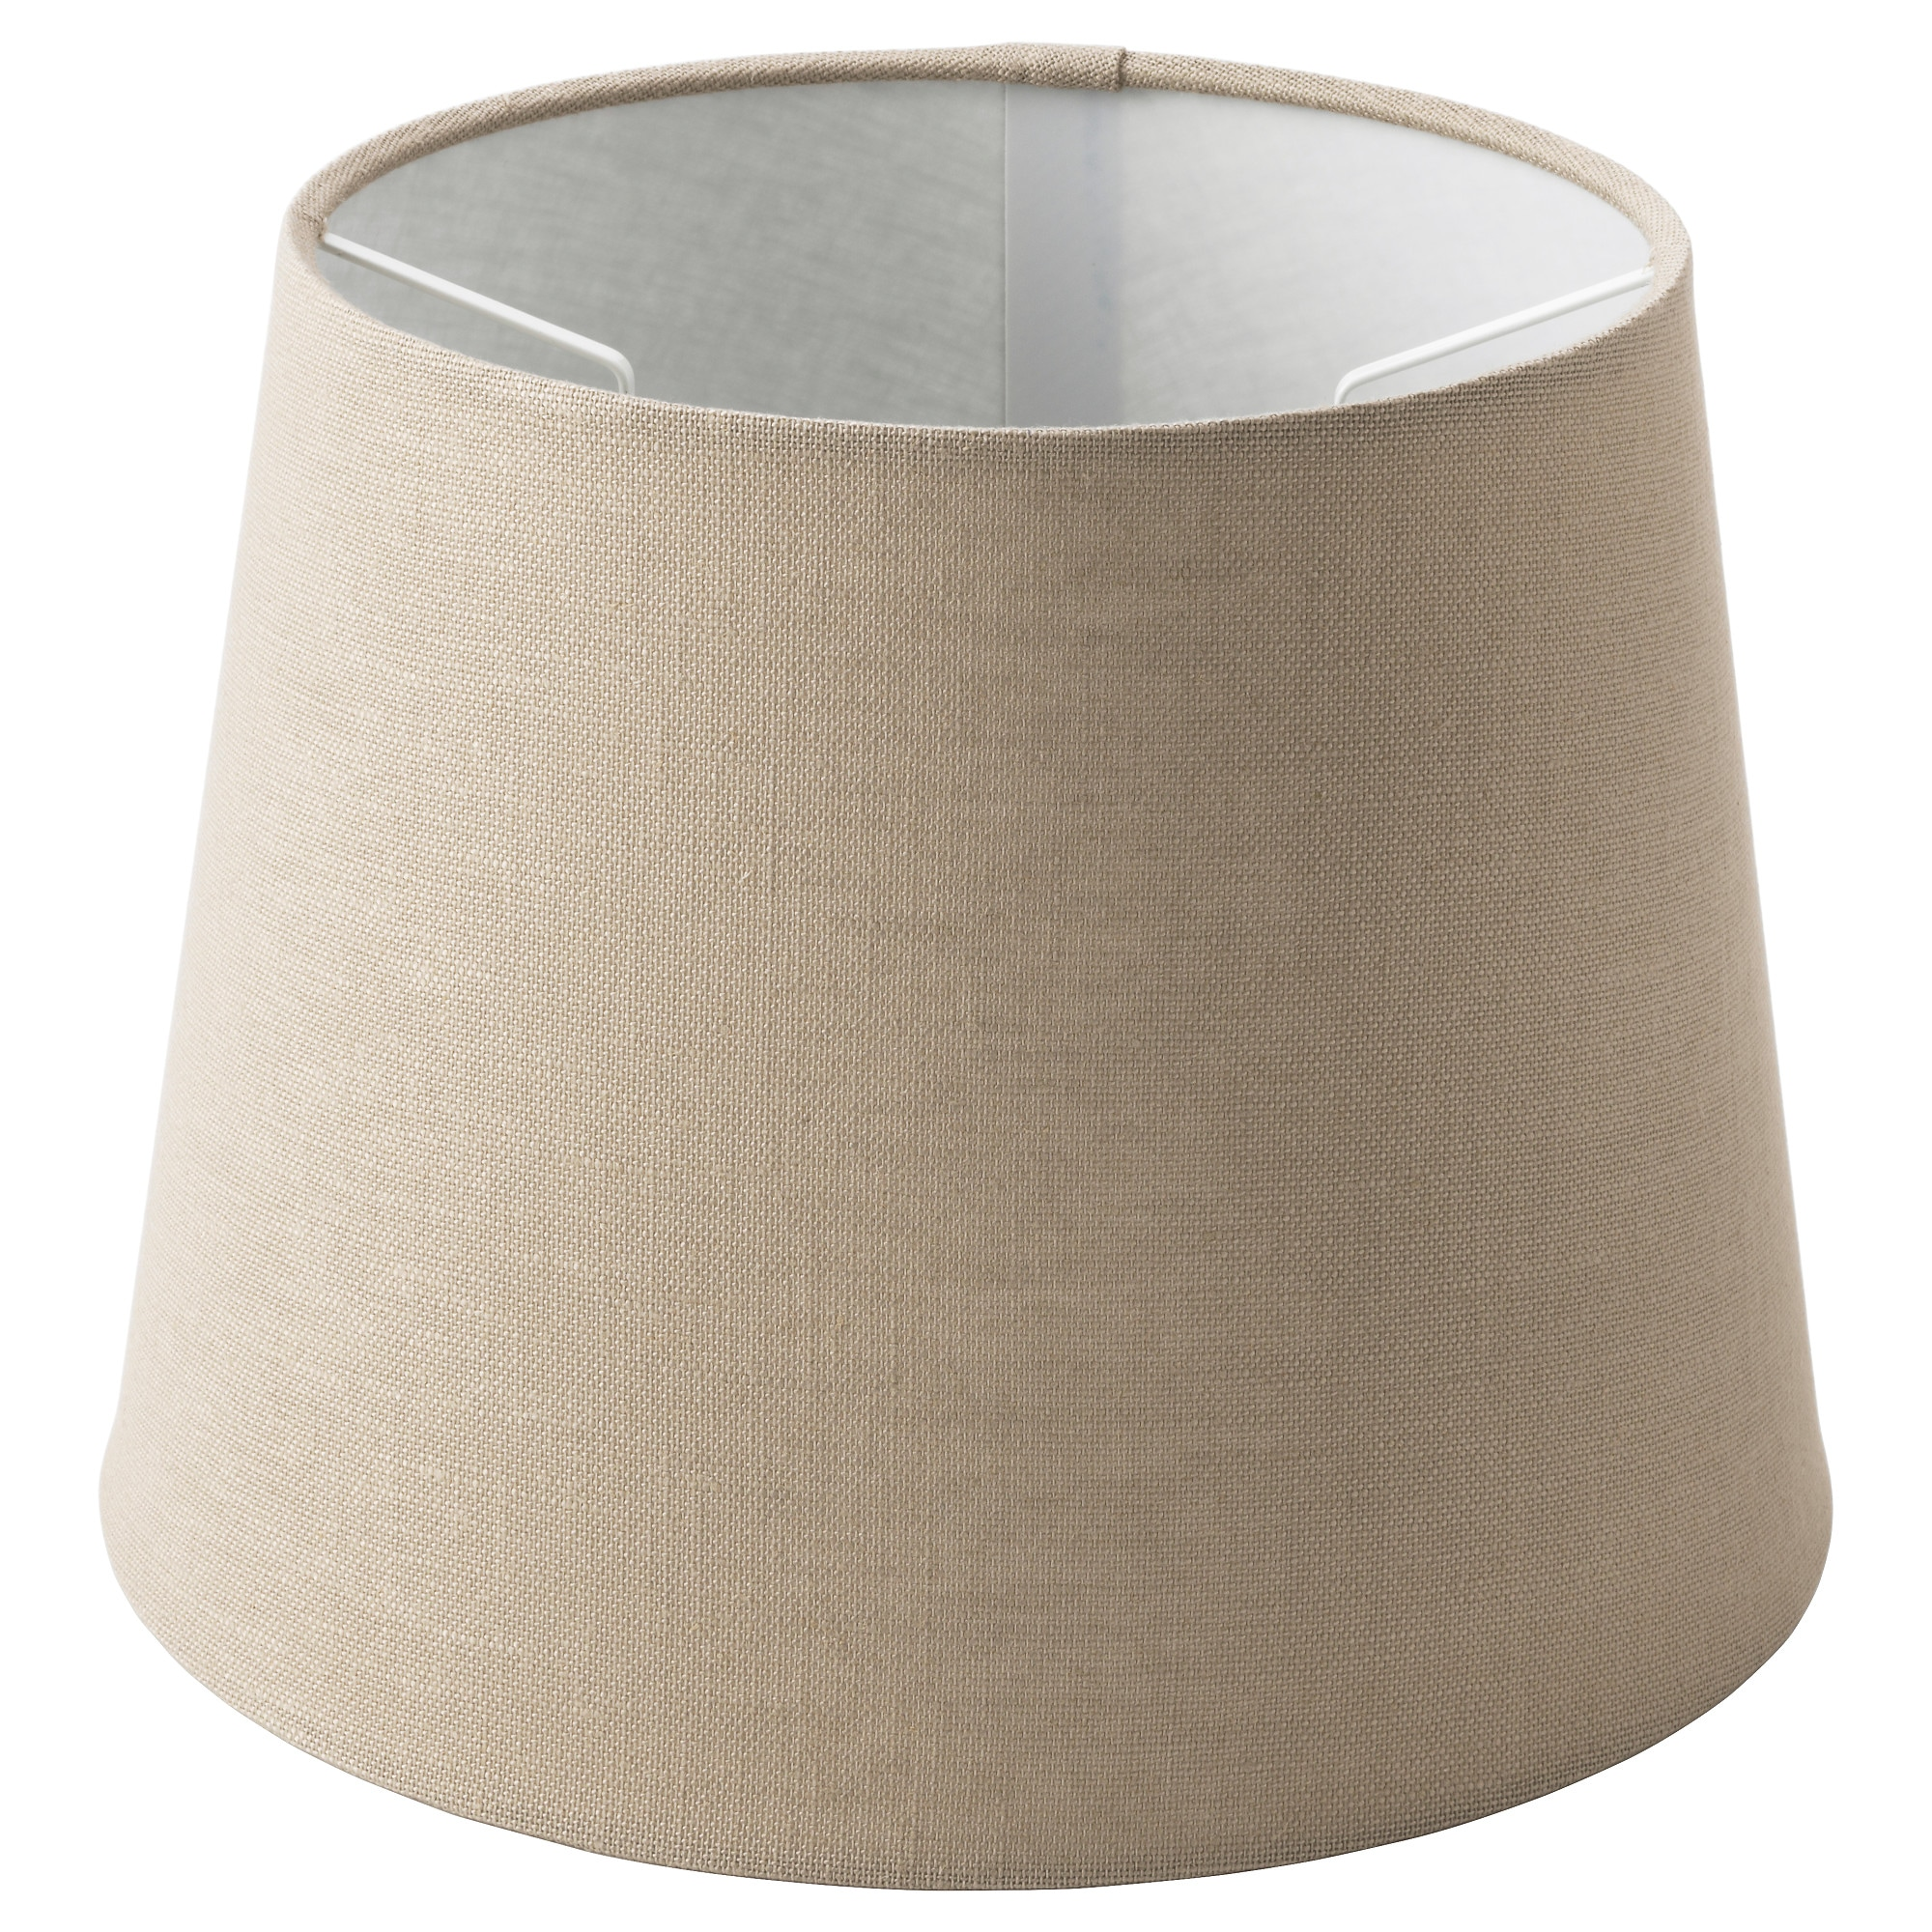 JRA lamp shade, beige Height: 7